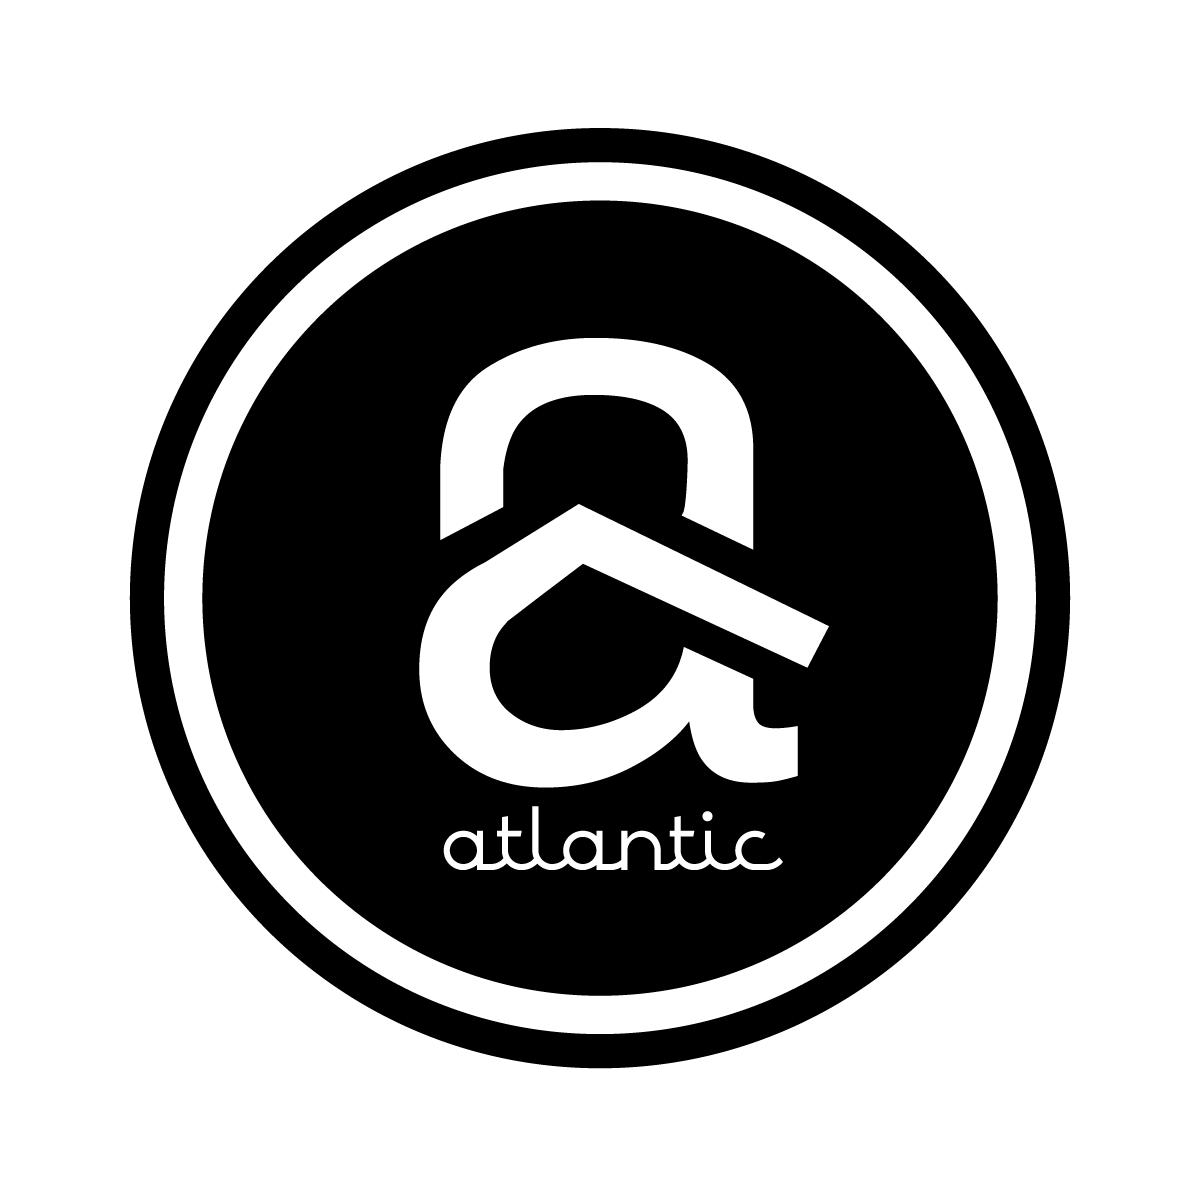 atlantic roofing logo builder logo